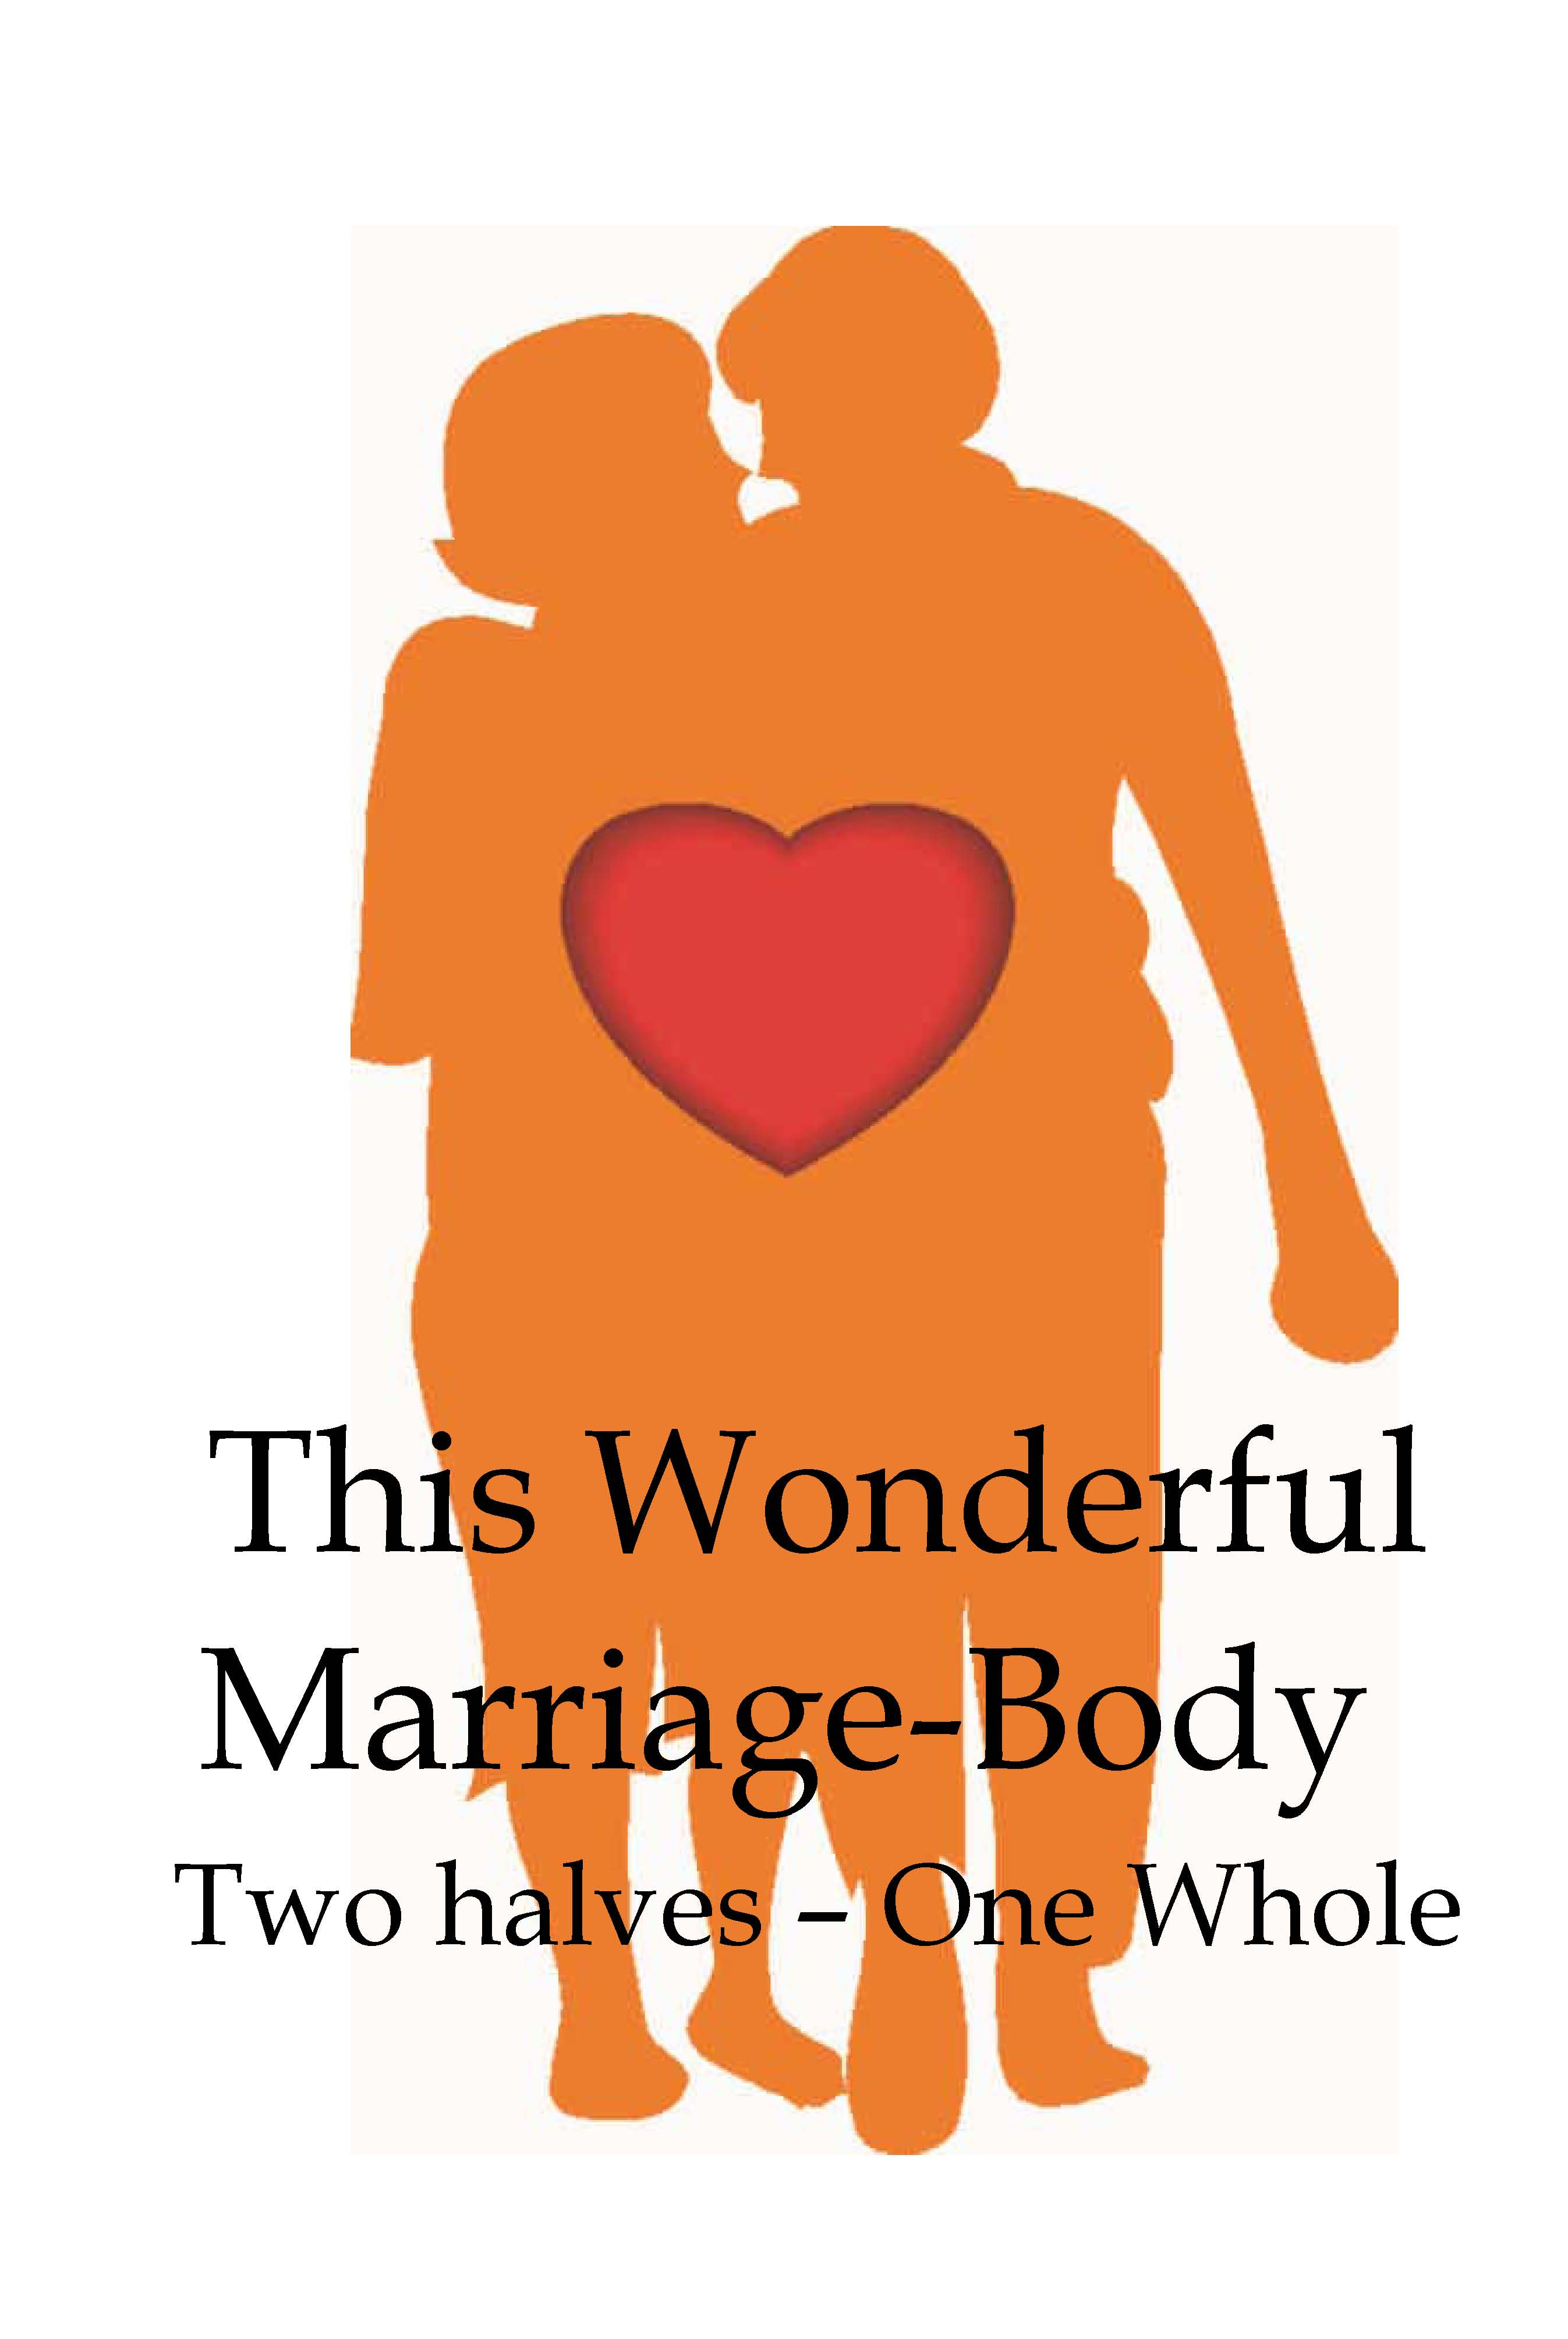 This wonderful marriage body front graph